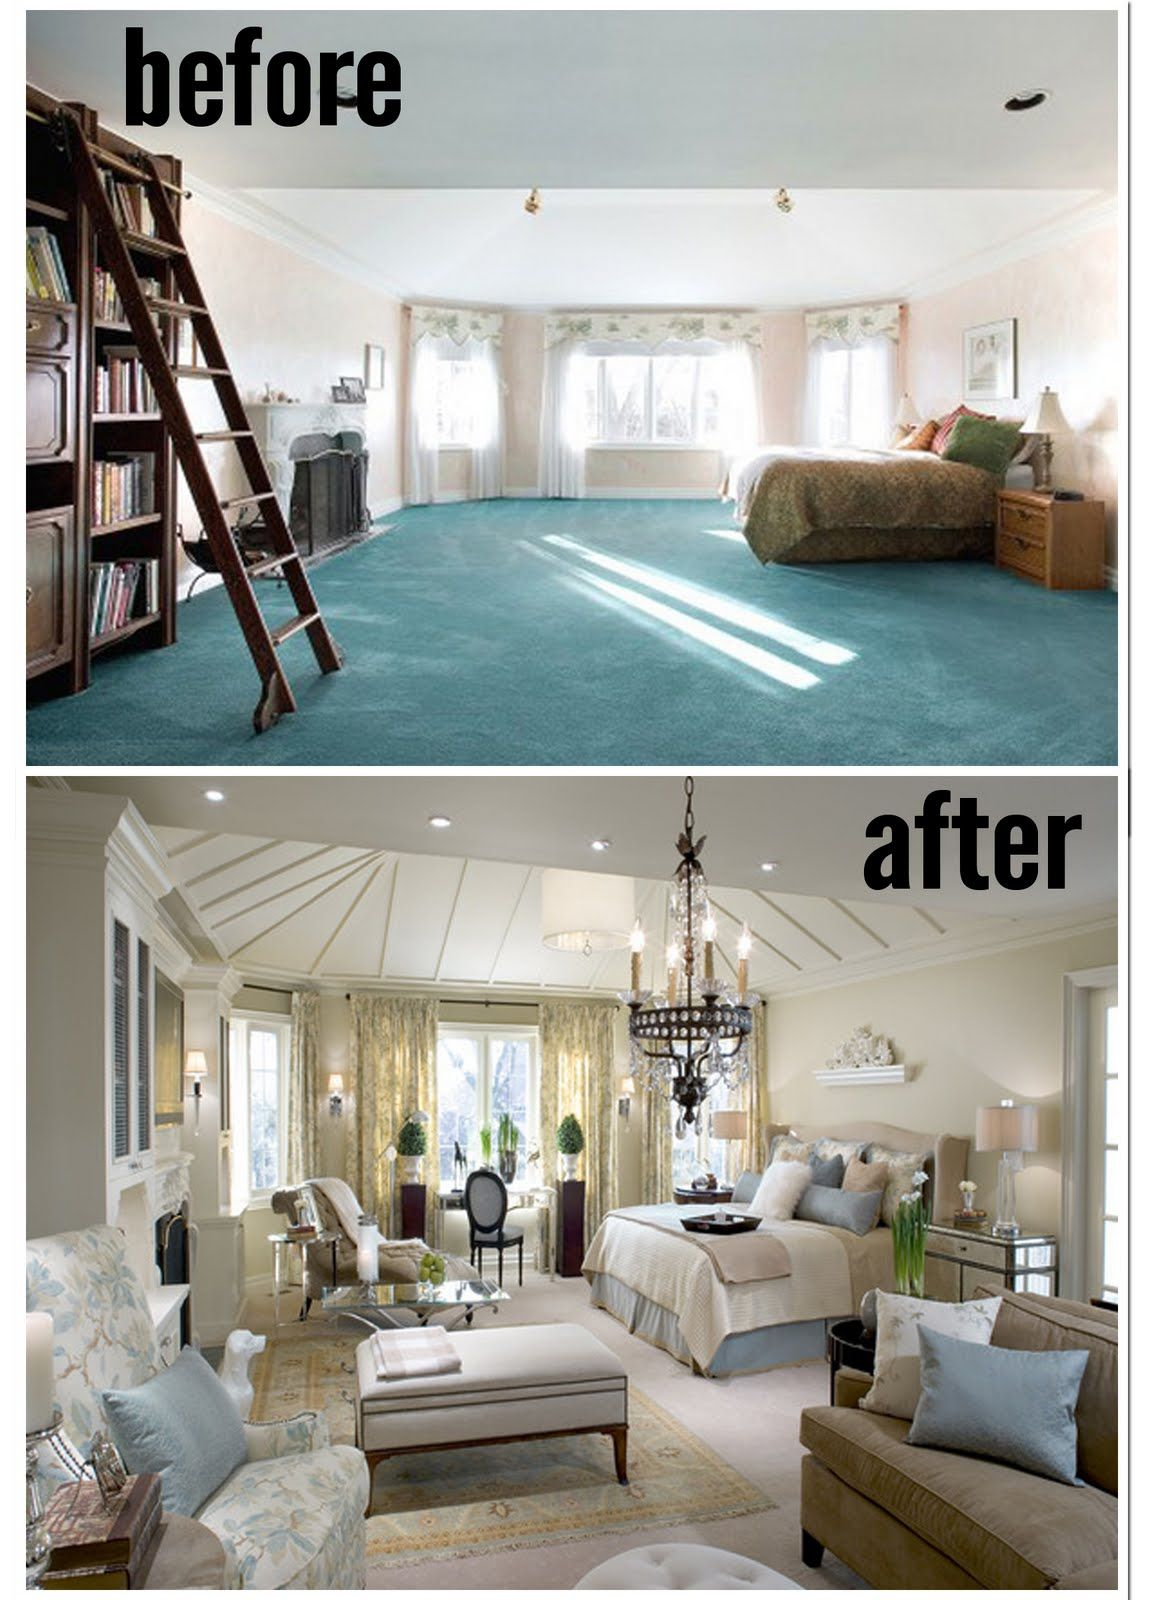 Candice Olson Bedroom Designs Prepossessing Amazing Master Bedroomscandice Olson Before And Afters  At Inspiration